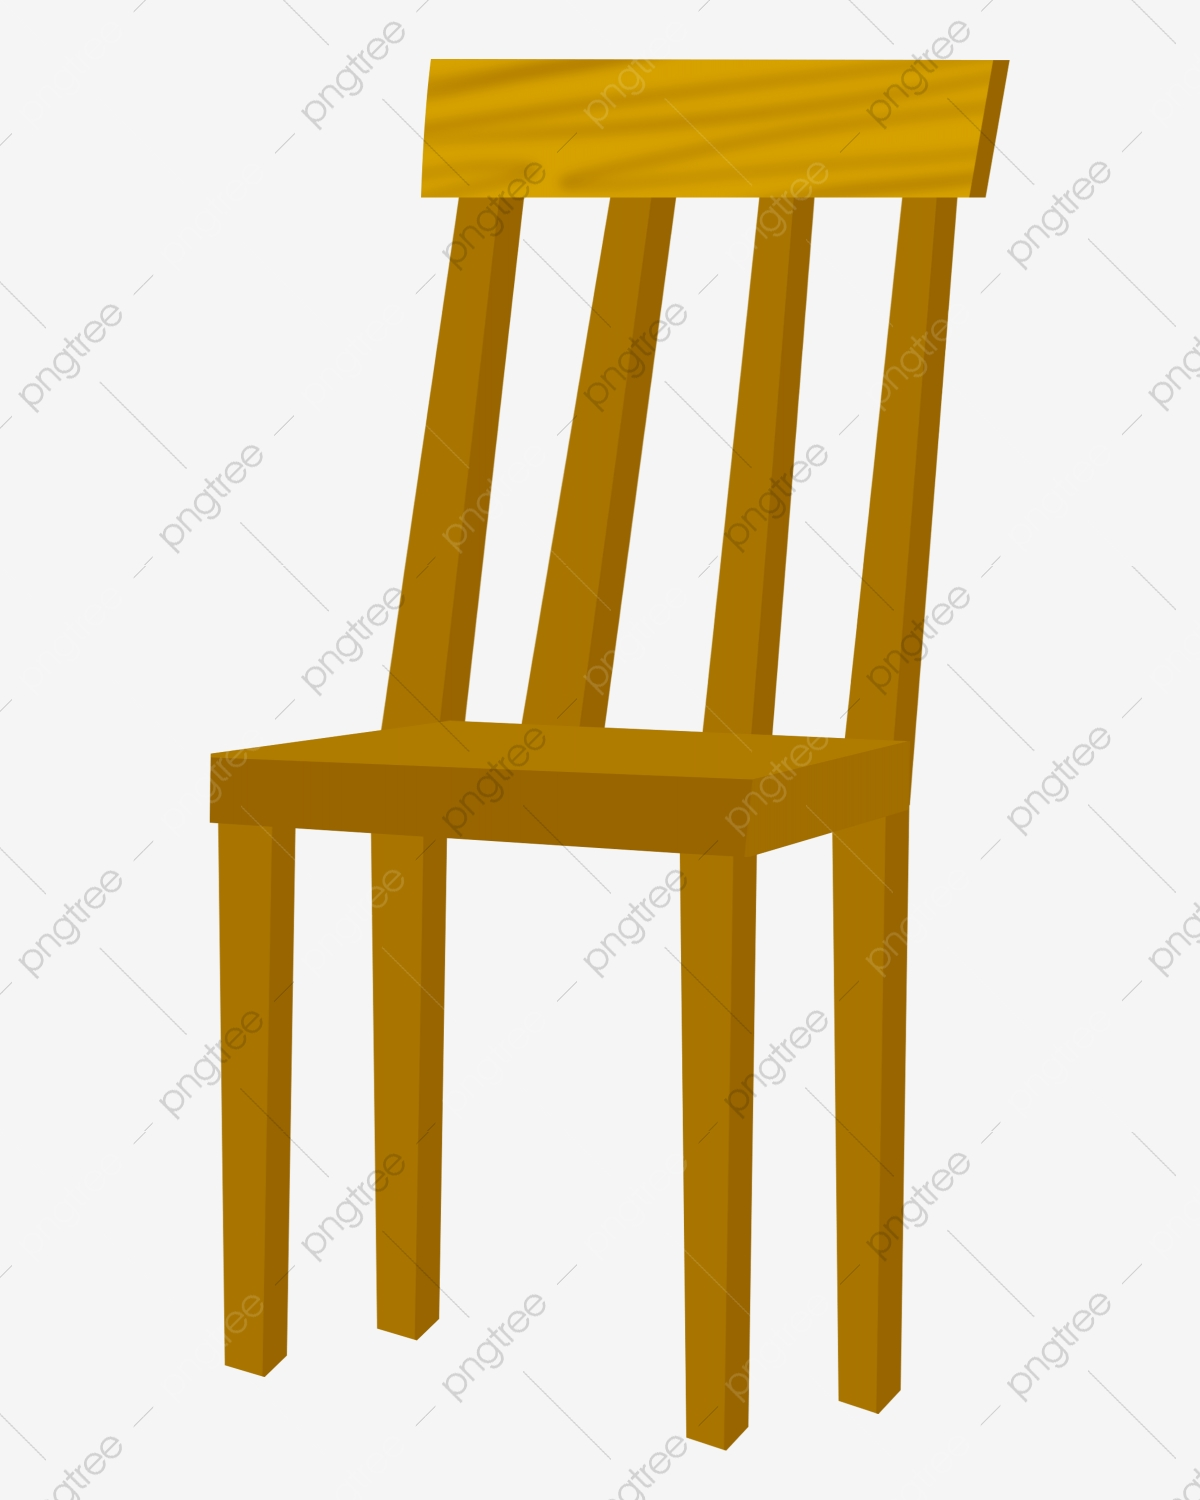 Solid Wood Furniture Chair Illustration, Solid Wood Chair ...